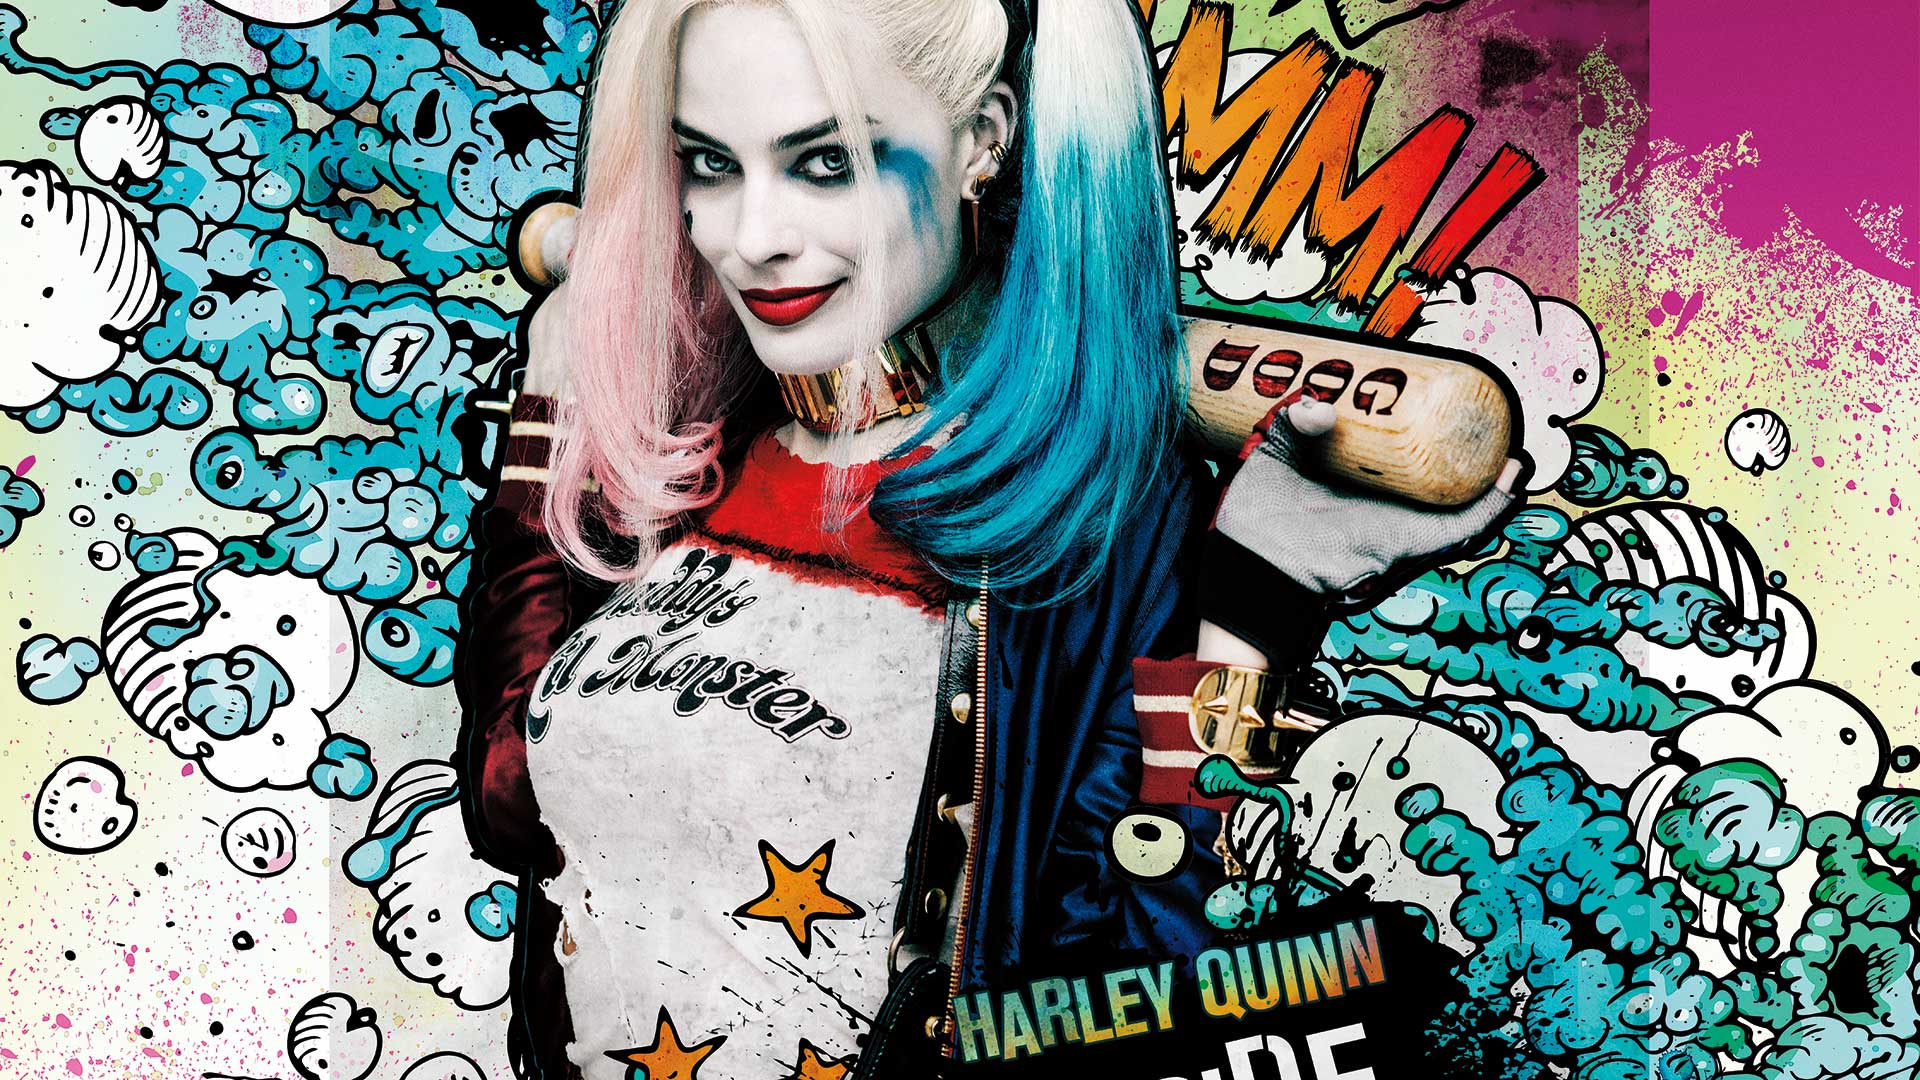 osw.zone Nobody's Fool:  The Many Faces of Harley Quinn